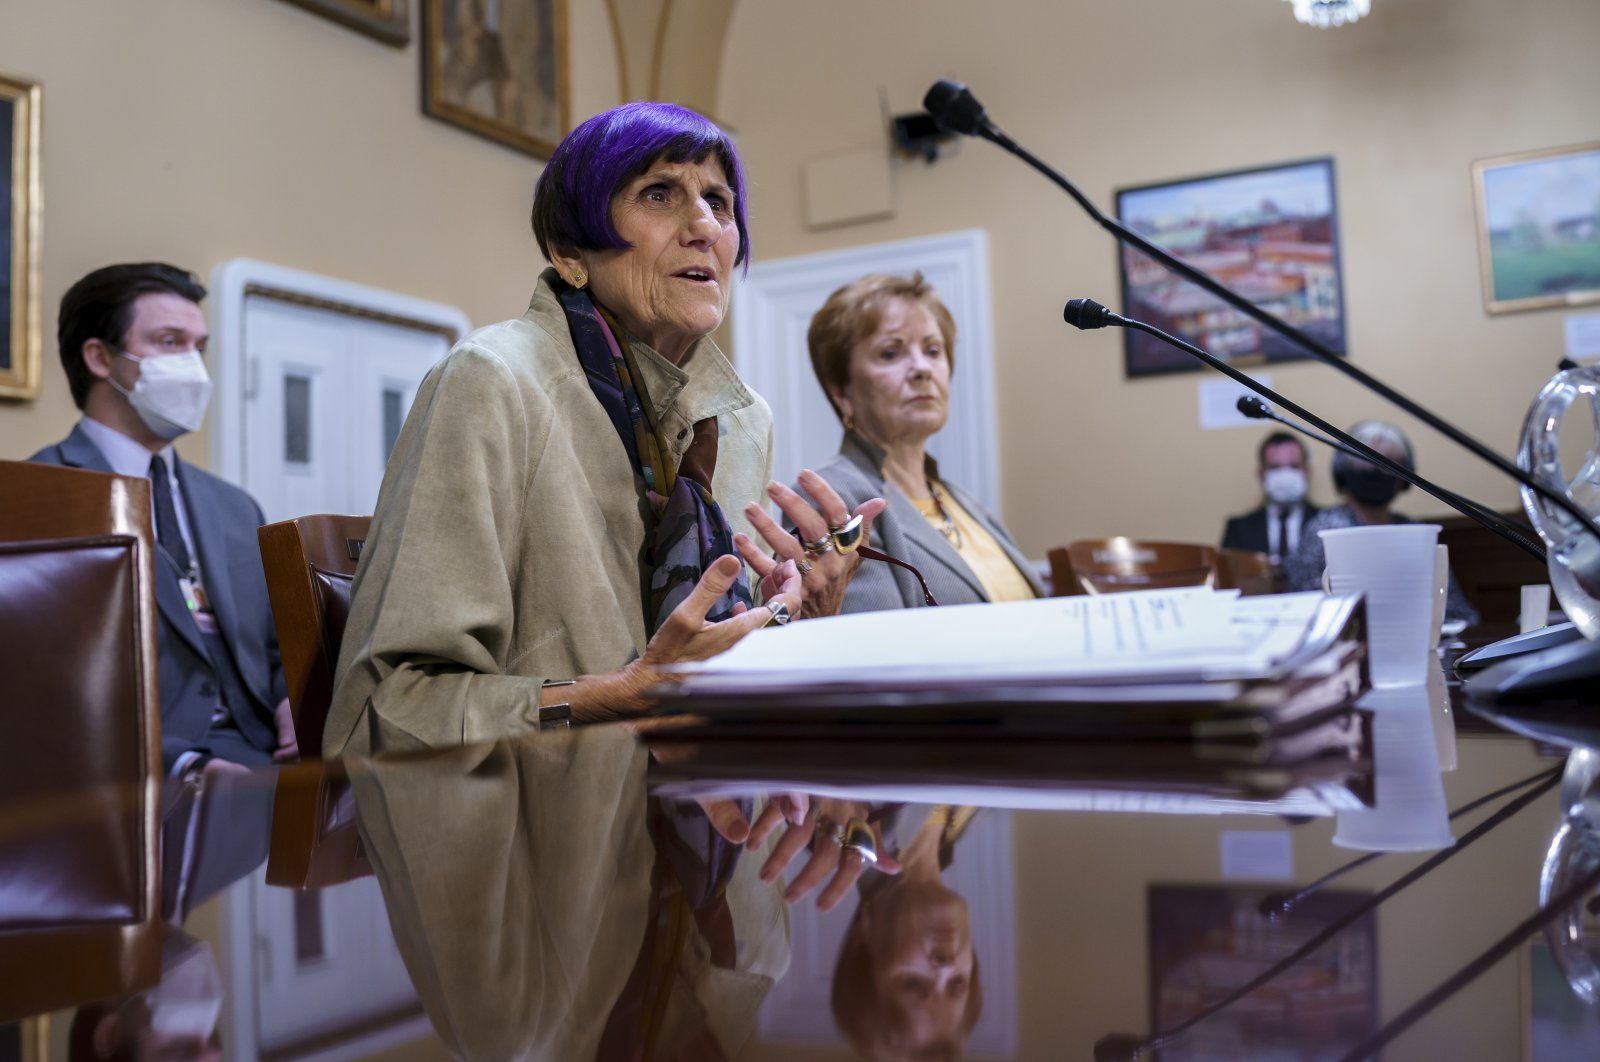 House Appropriations Committee Chair Rosa DeLauro, D-Conn. (L), joined by Rep. Kay Granger, R-Texas, the ranking member of appropriations, appear before the House Rules Committee as they field questions about the politics of the federal debt, in Washington, D.C., U.S., Sept. 21, 2021. (AP Photo)